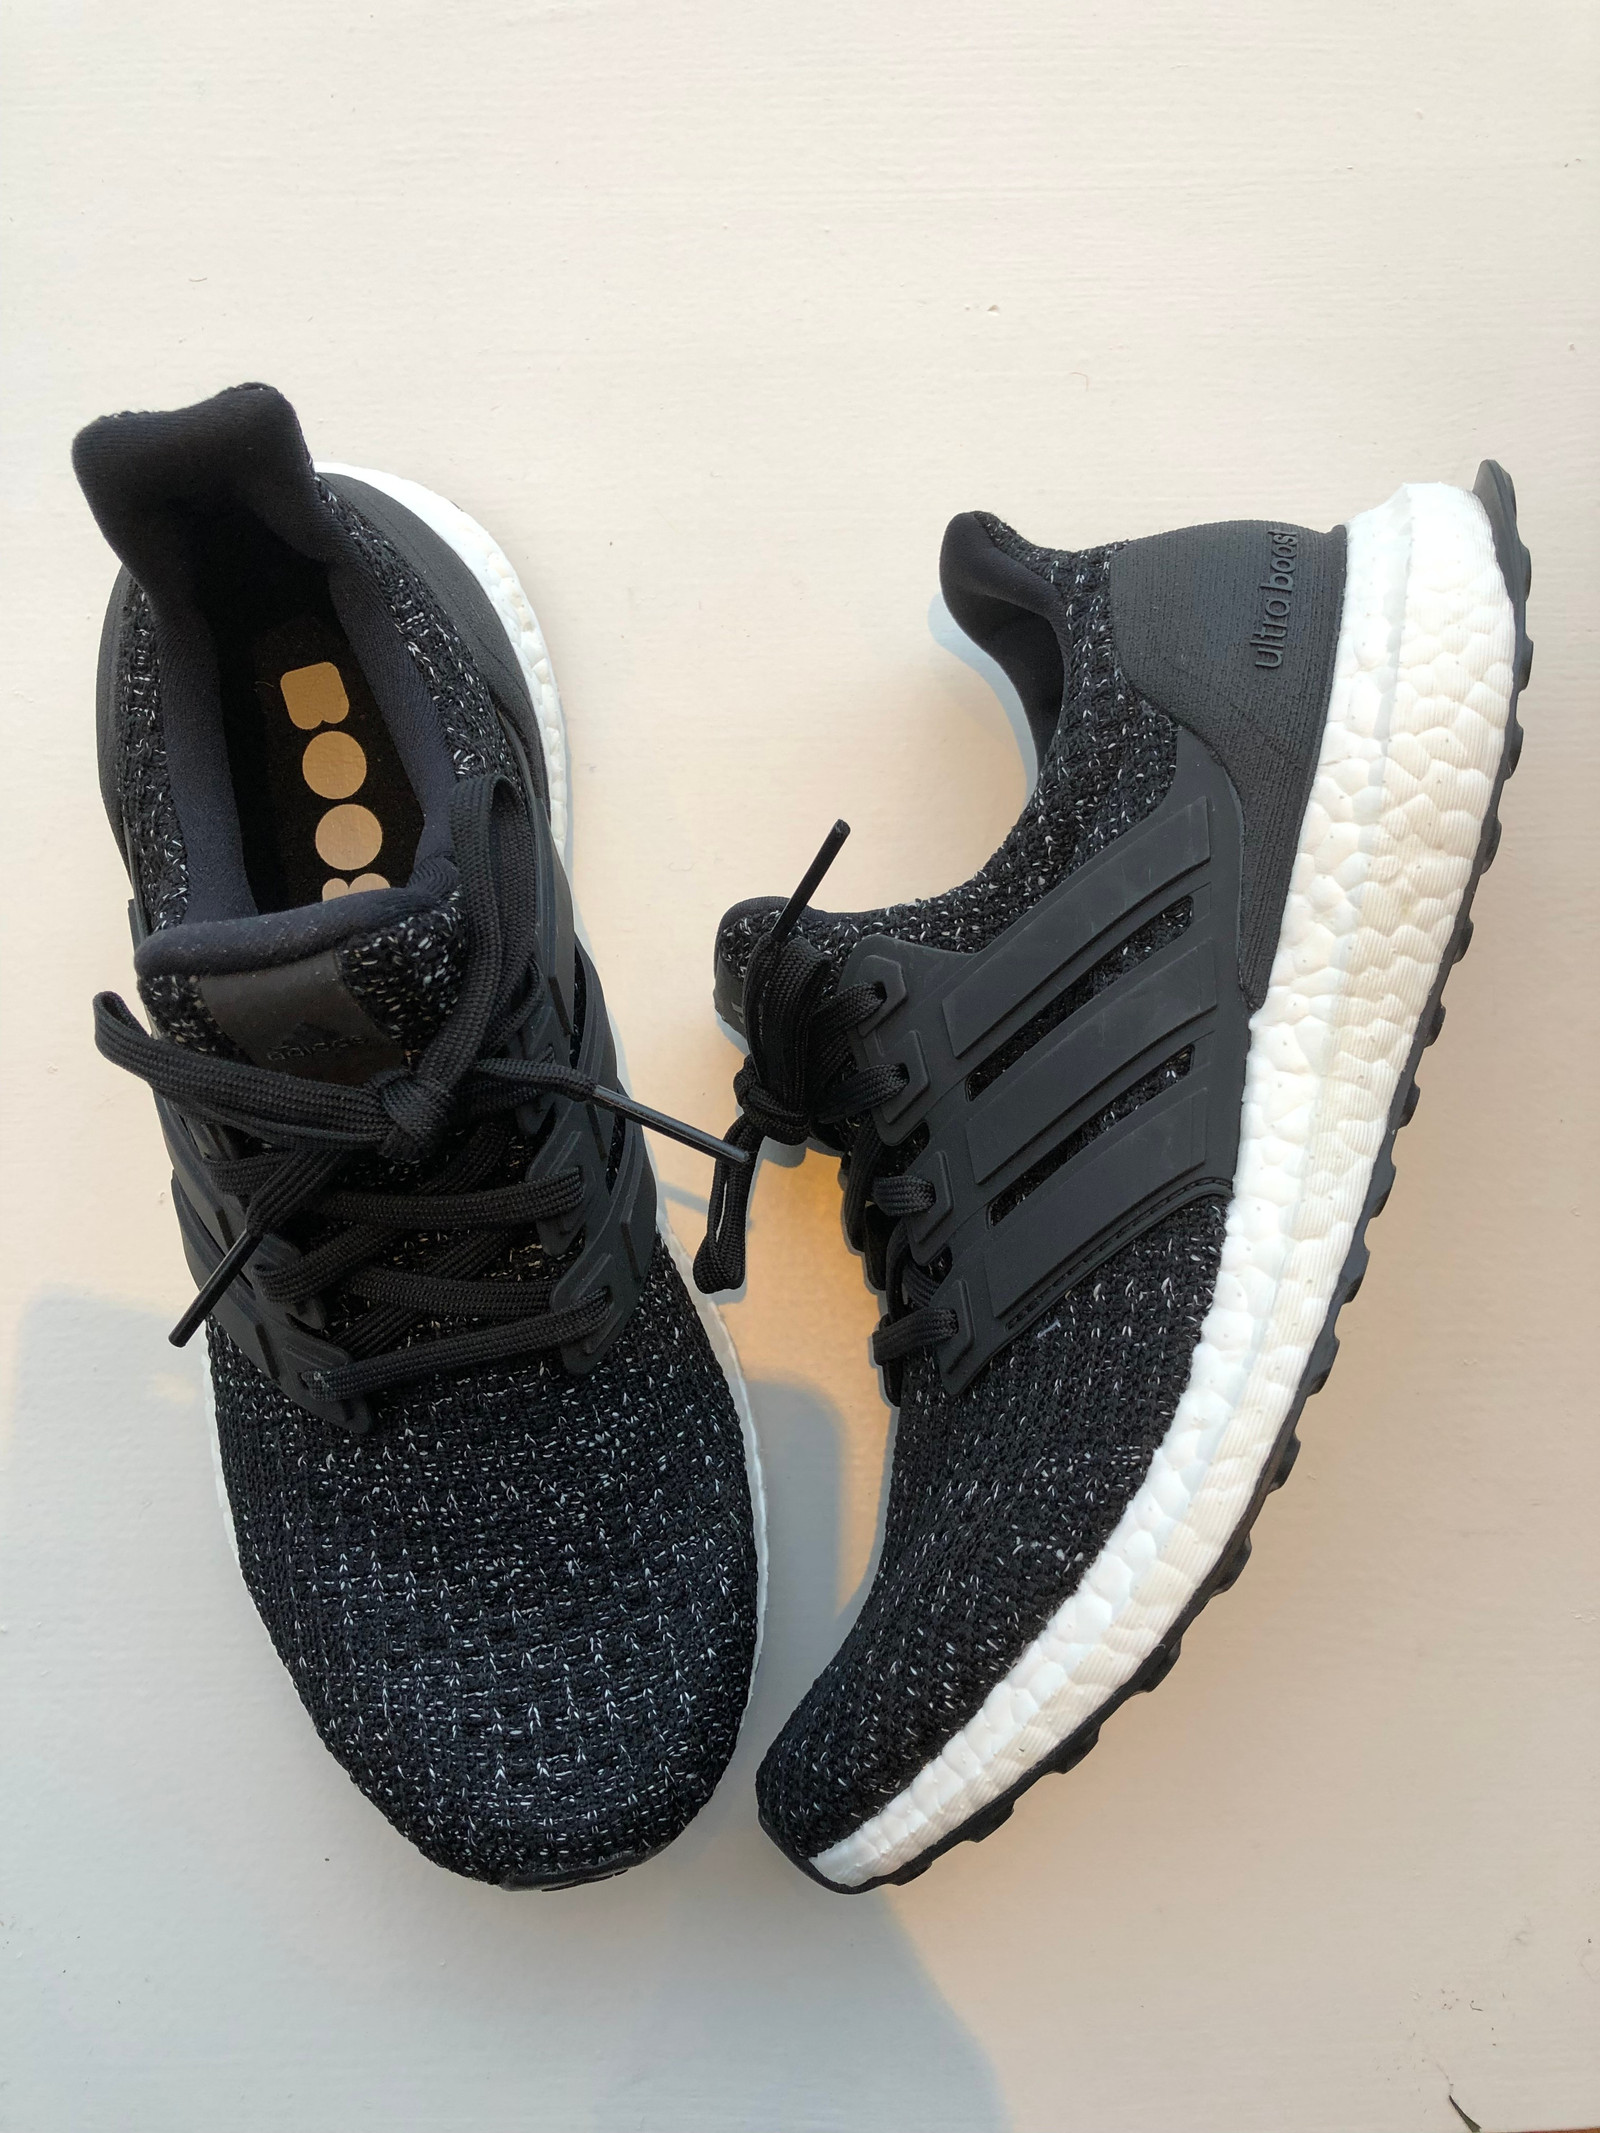 Adidas ultra boost | FINN.no